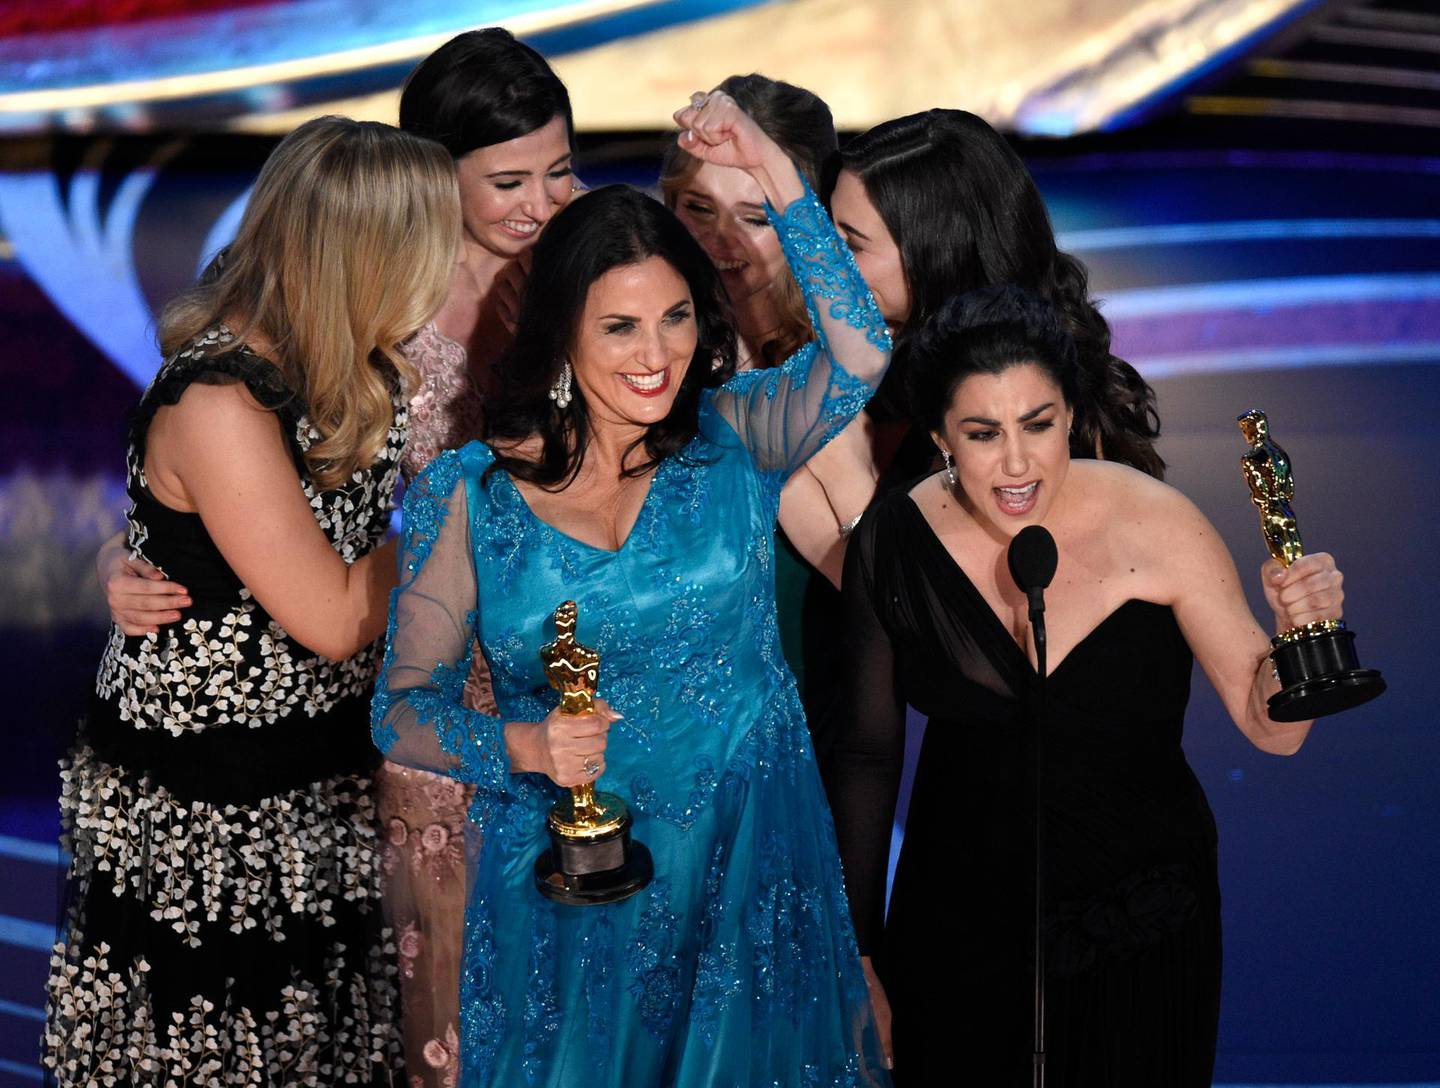 """Melissa Berton, center left, and Rayka Zehtabchi accept the award for best documentary short subject for """"Period. End of Sentence."""" at the Oscars on Sunday, Feb. 24, 2019, at the Dolby Theatre in Los Angeles. (Photo by Chris Pizzello/Invision/AP)"""